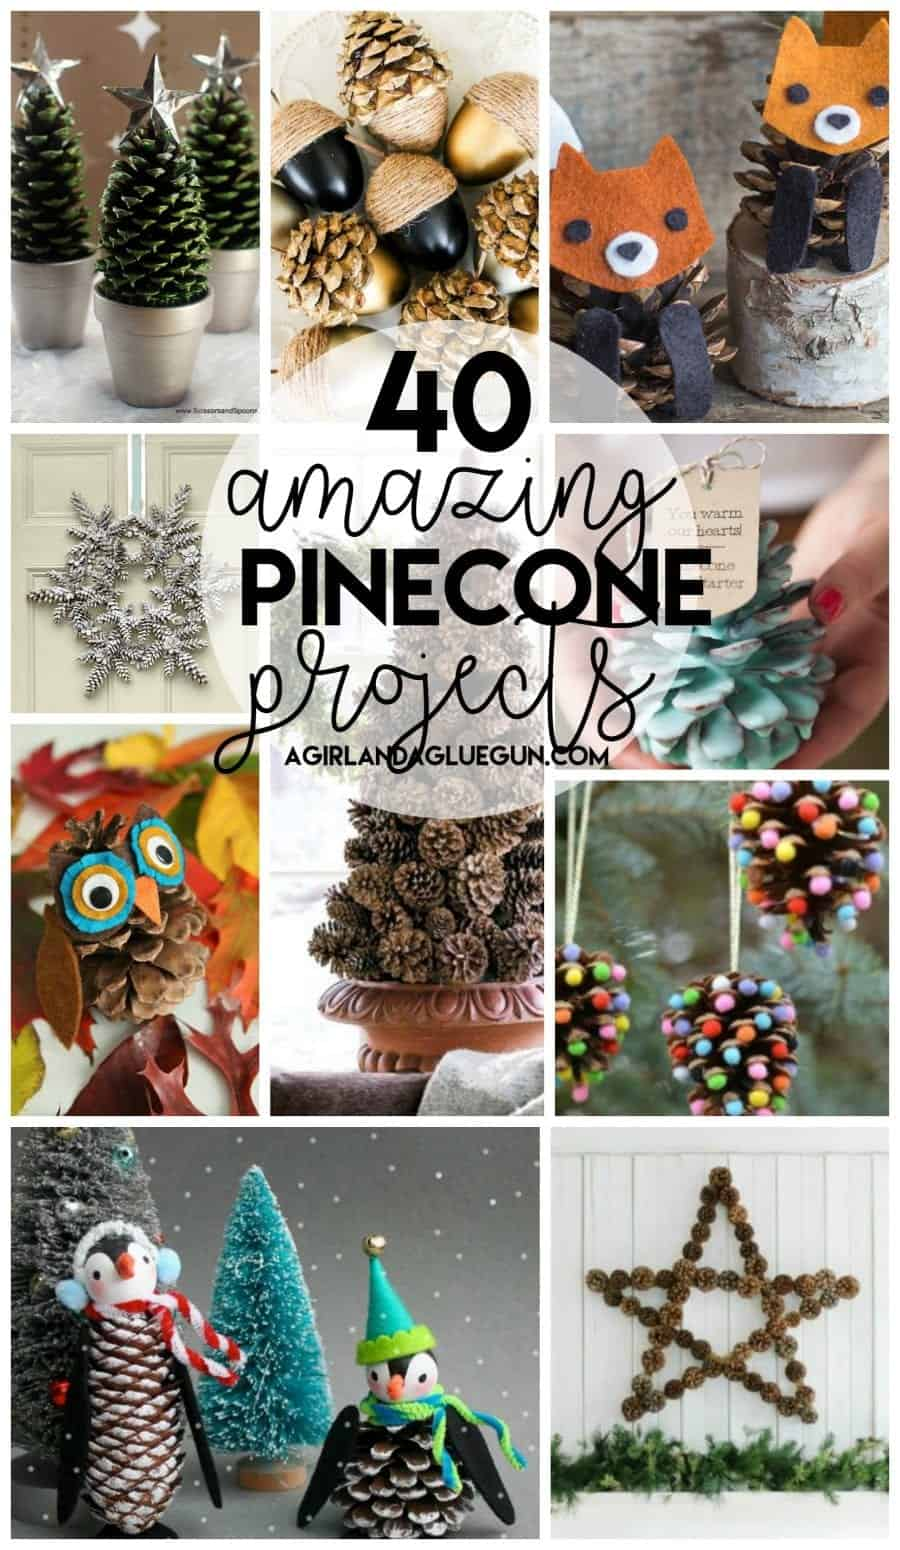 40 awesome pinecone crafts and projects - A girl and a glue gun